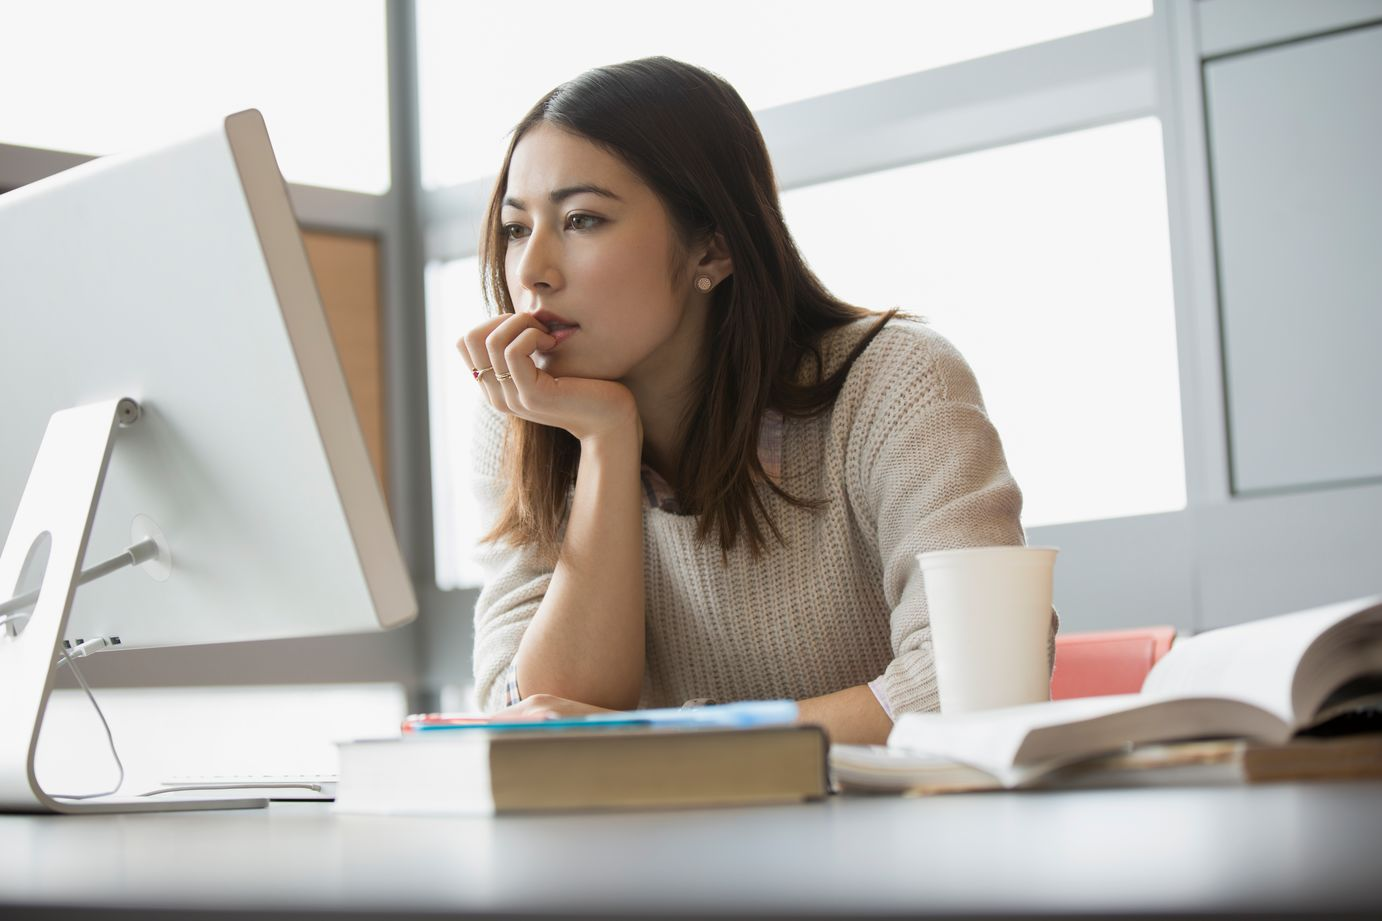 woman sitting at desk, resting her face on her hand, looking at computer